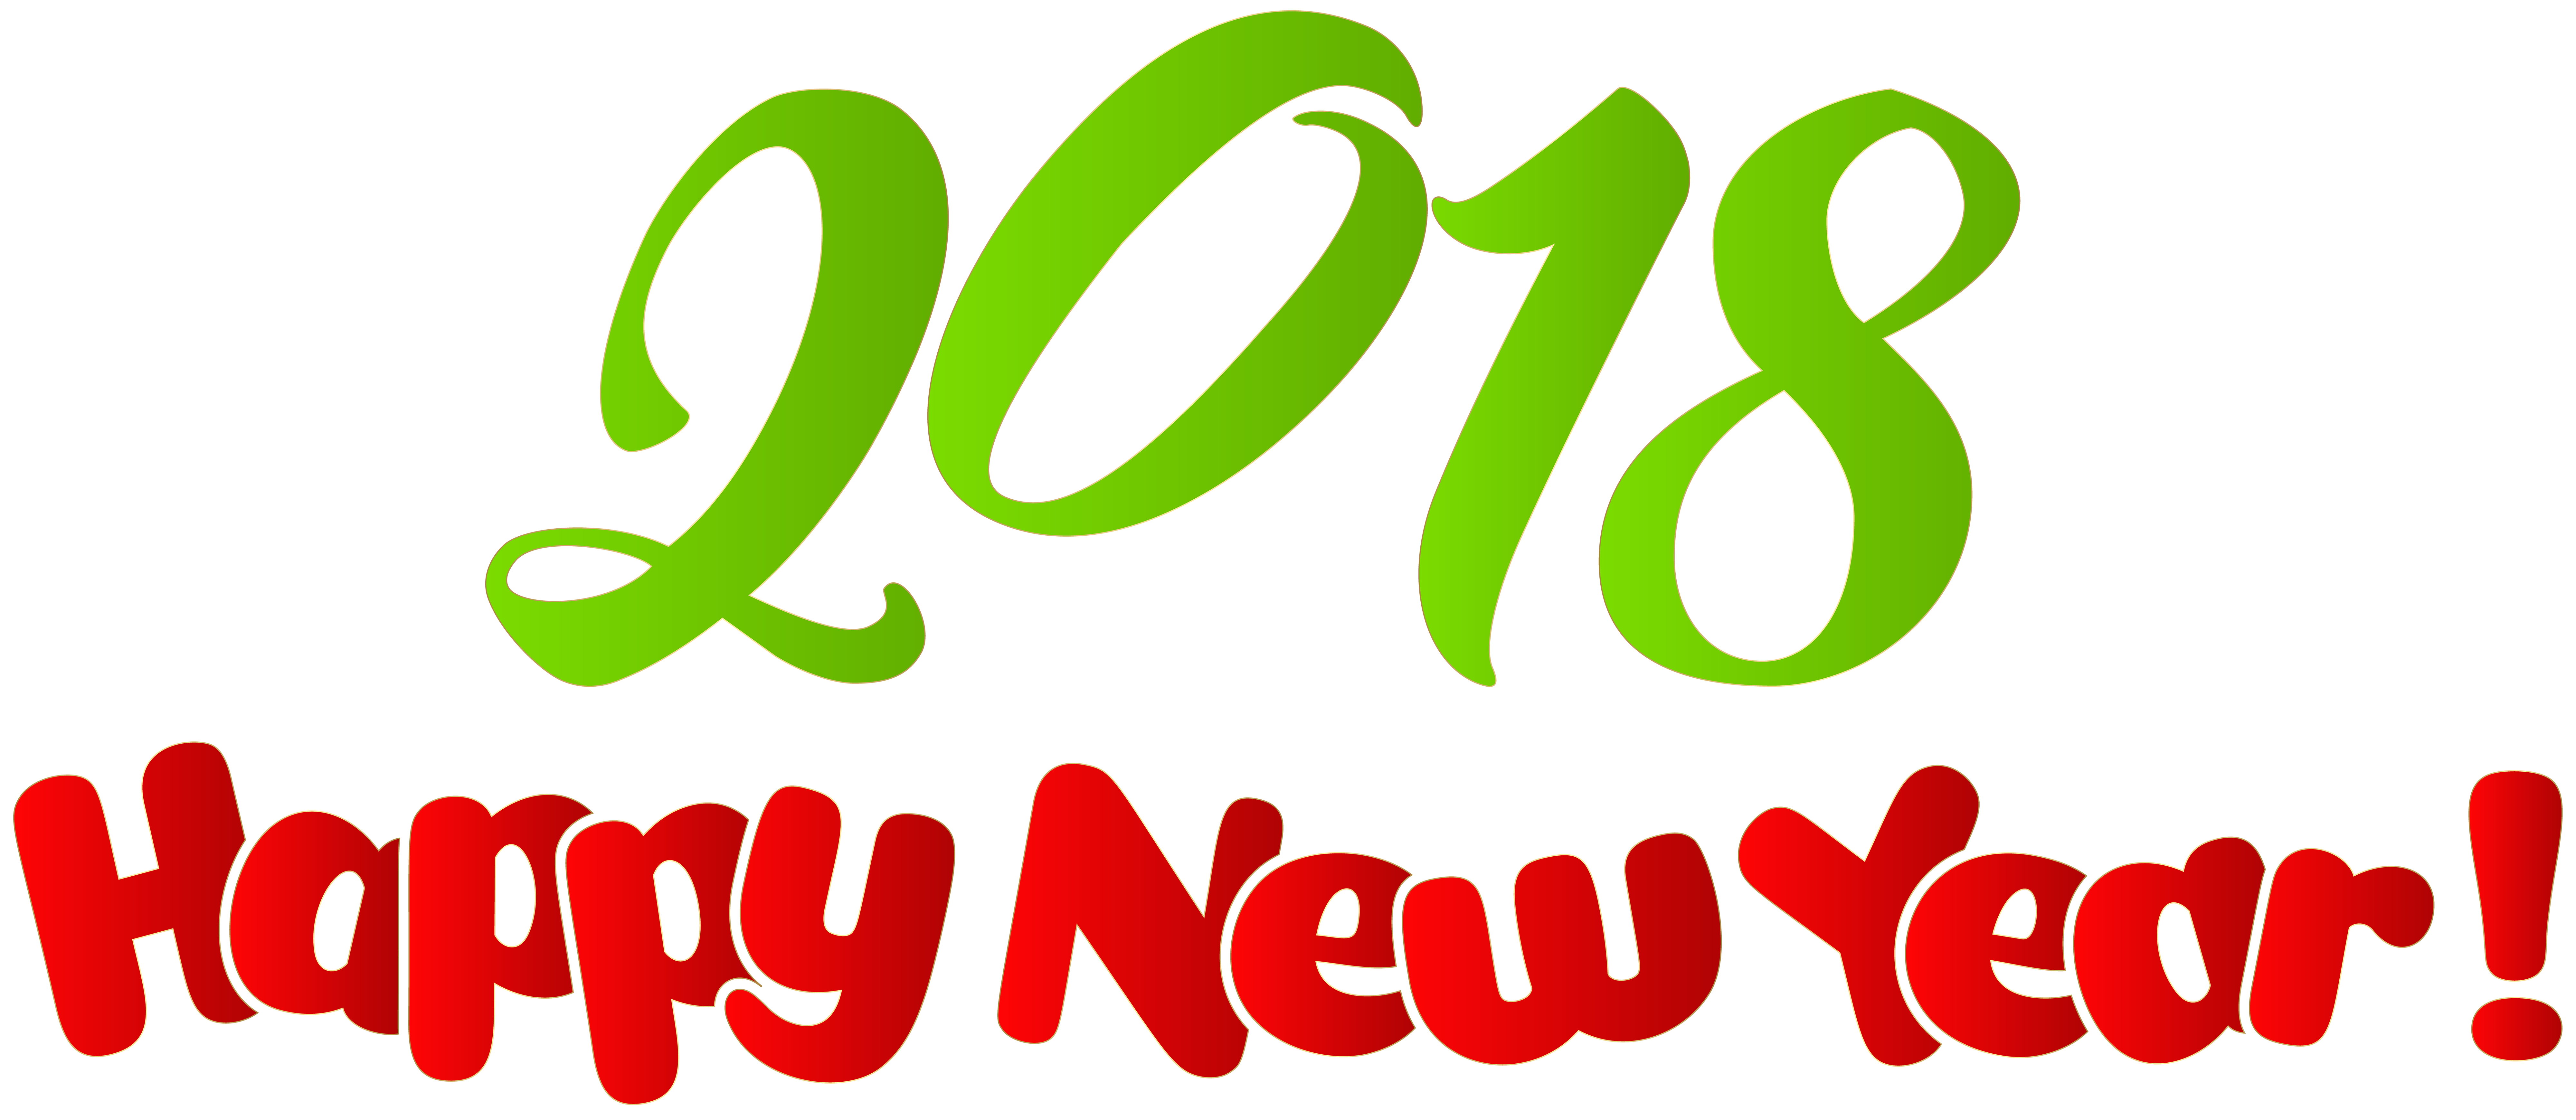 happy year png. Free new years 2018 clipart